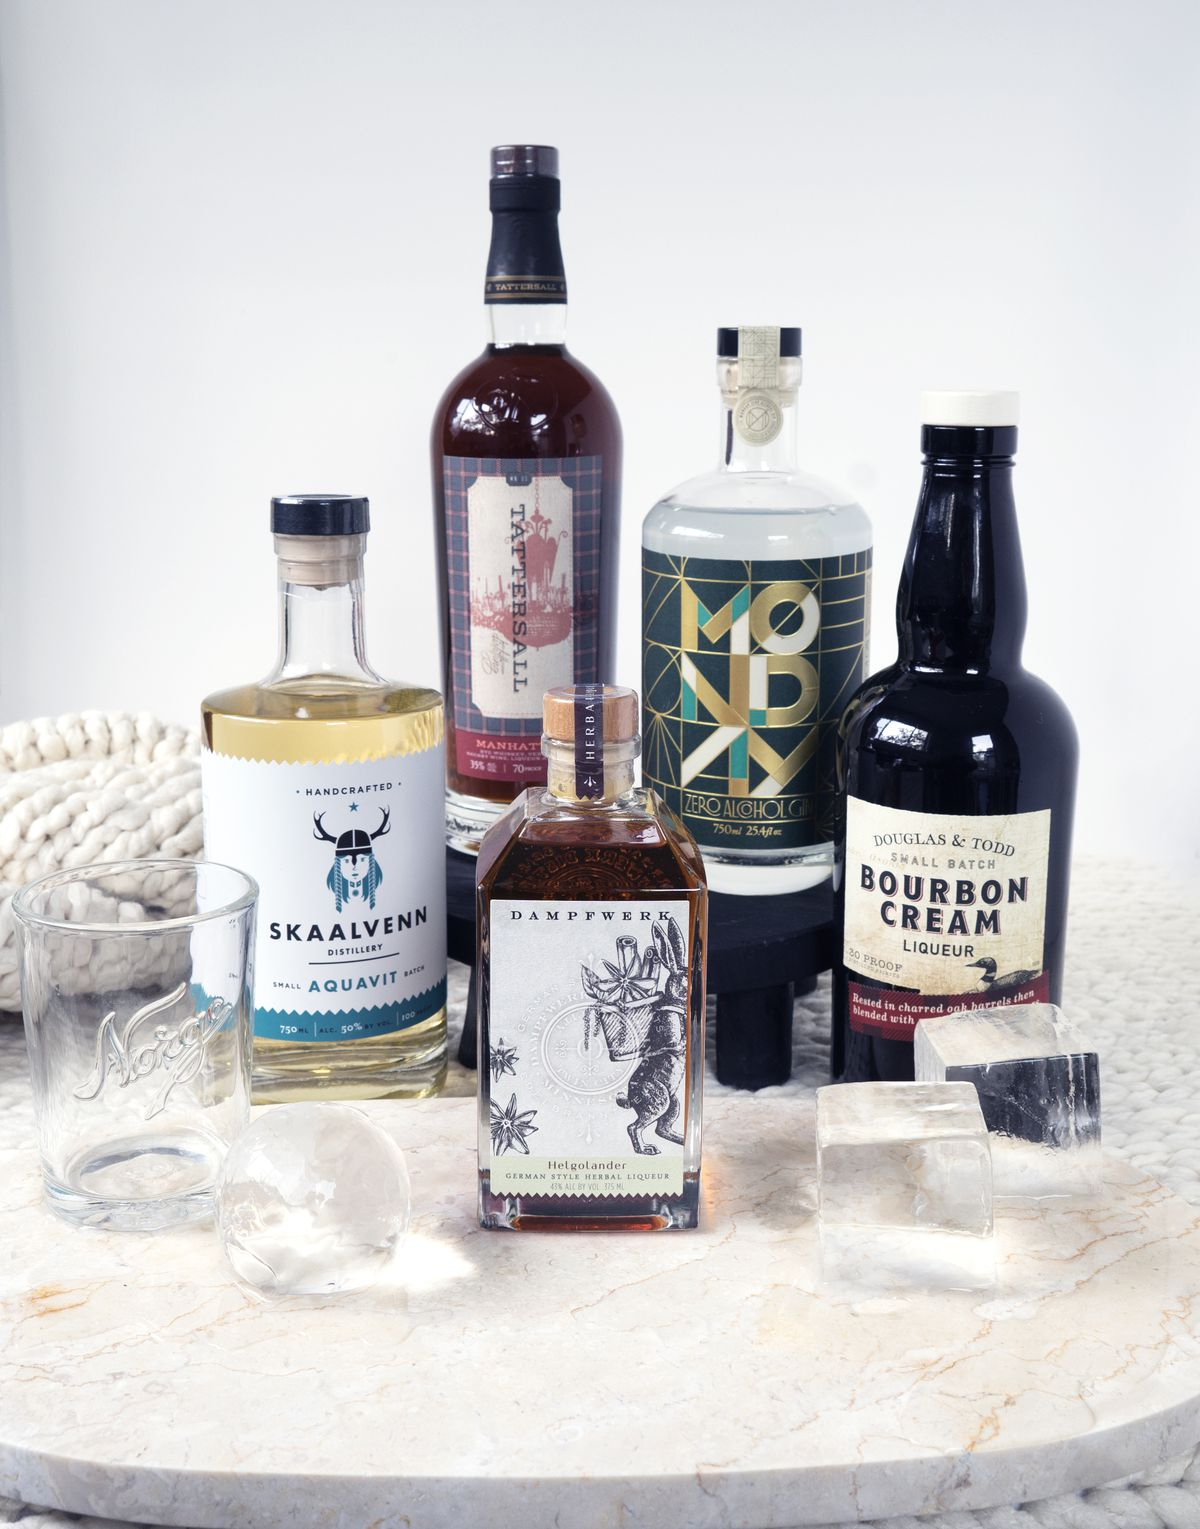 A selection of local liquor bottles, listed in the text, with two large glasses and crystal clear ice cubes